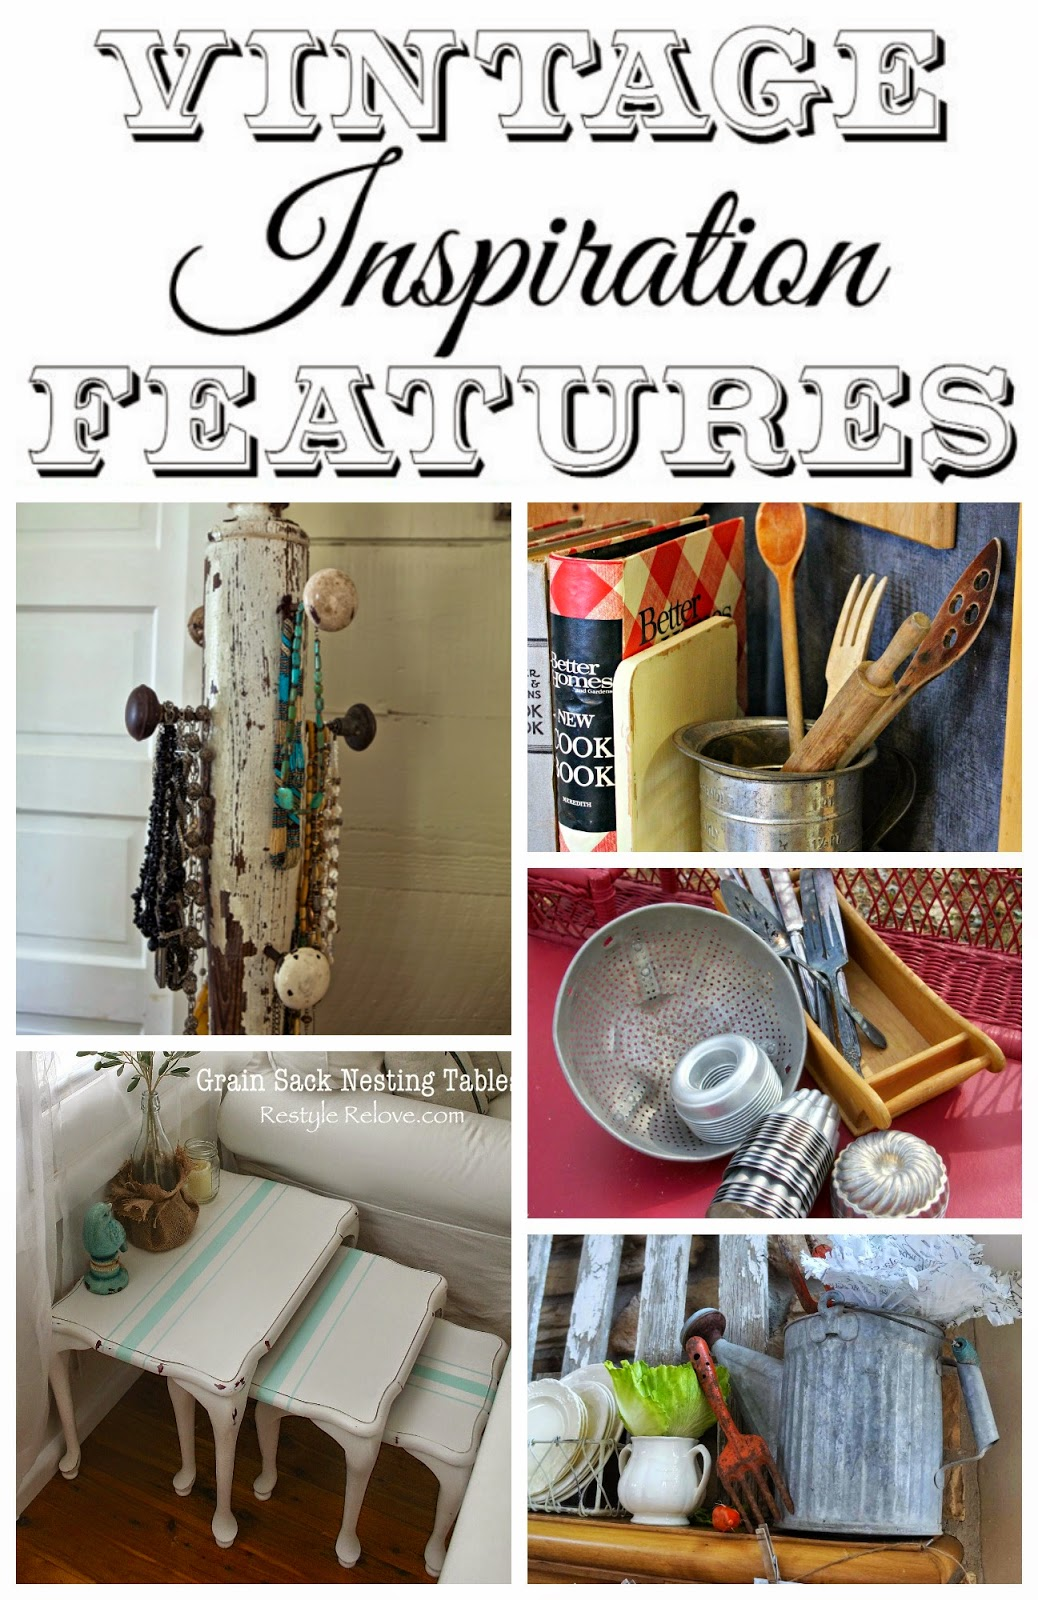 epurposed vintage projects